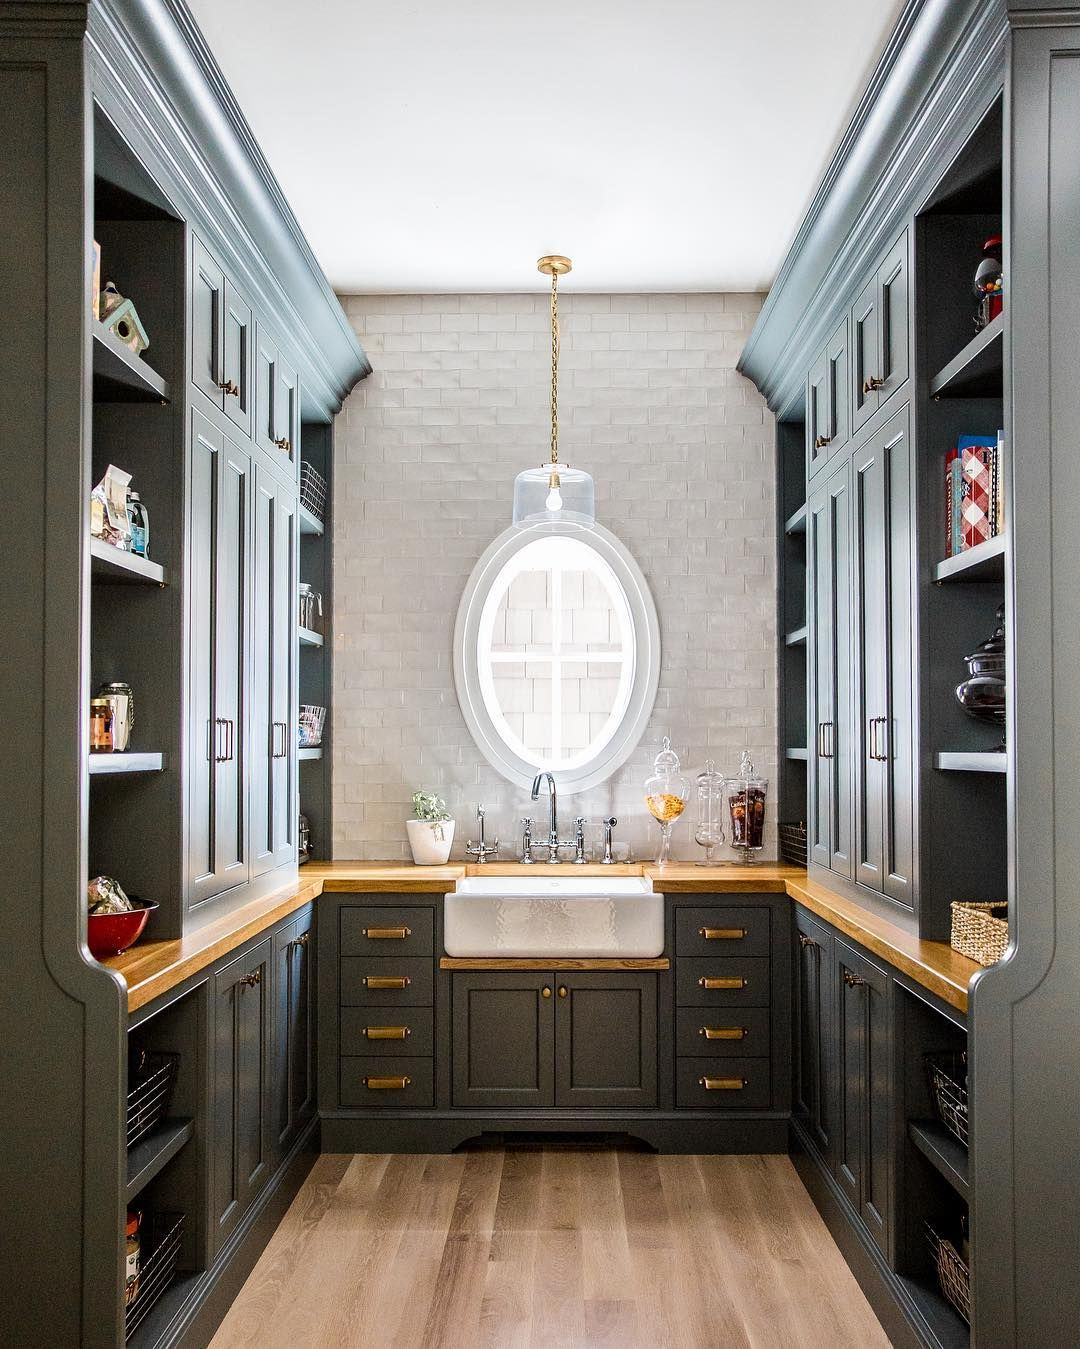 Scullery Design C S Cabinetry Design Cscabinetry Pantry Inspiration Pantry Design Butler Pantry